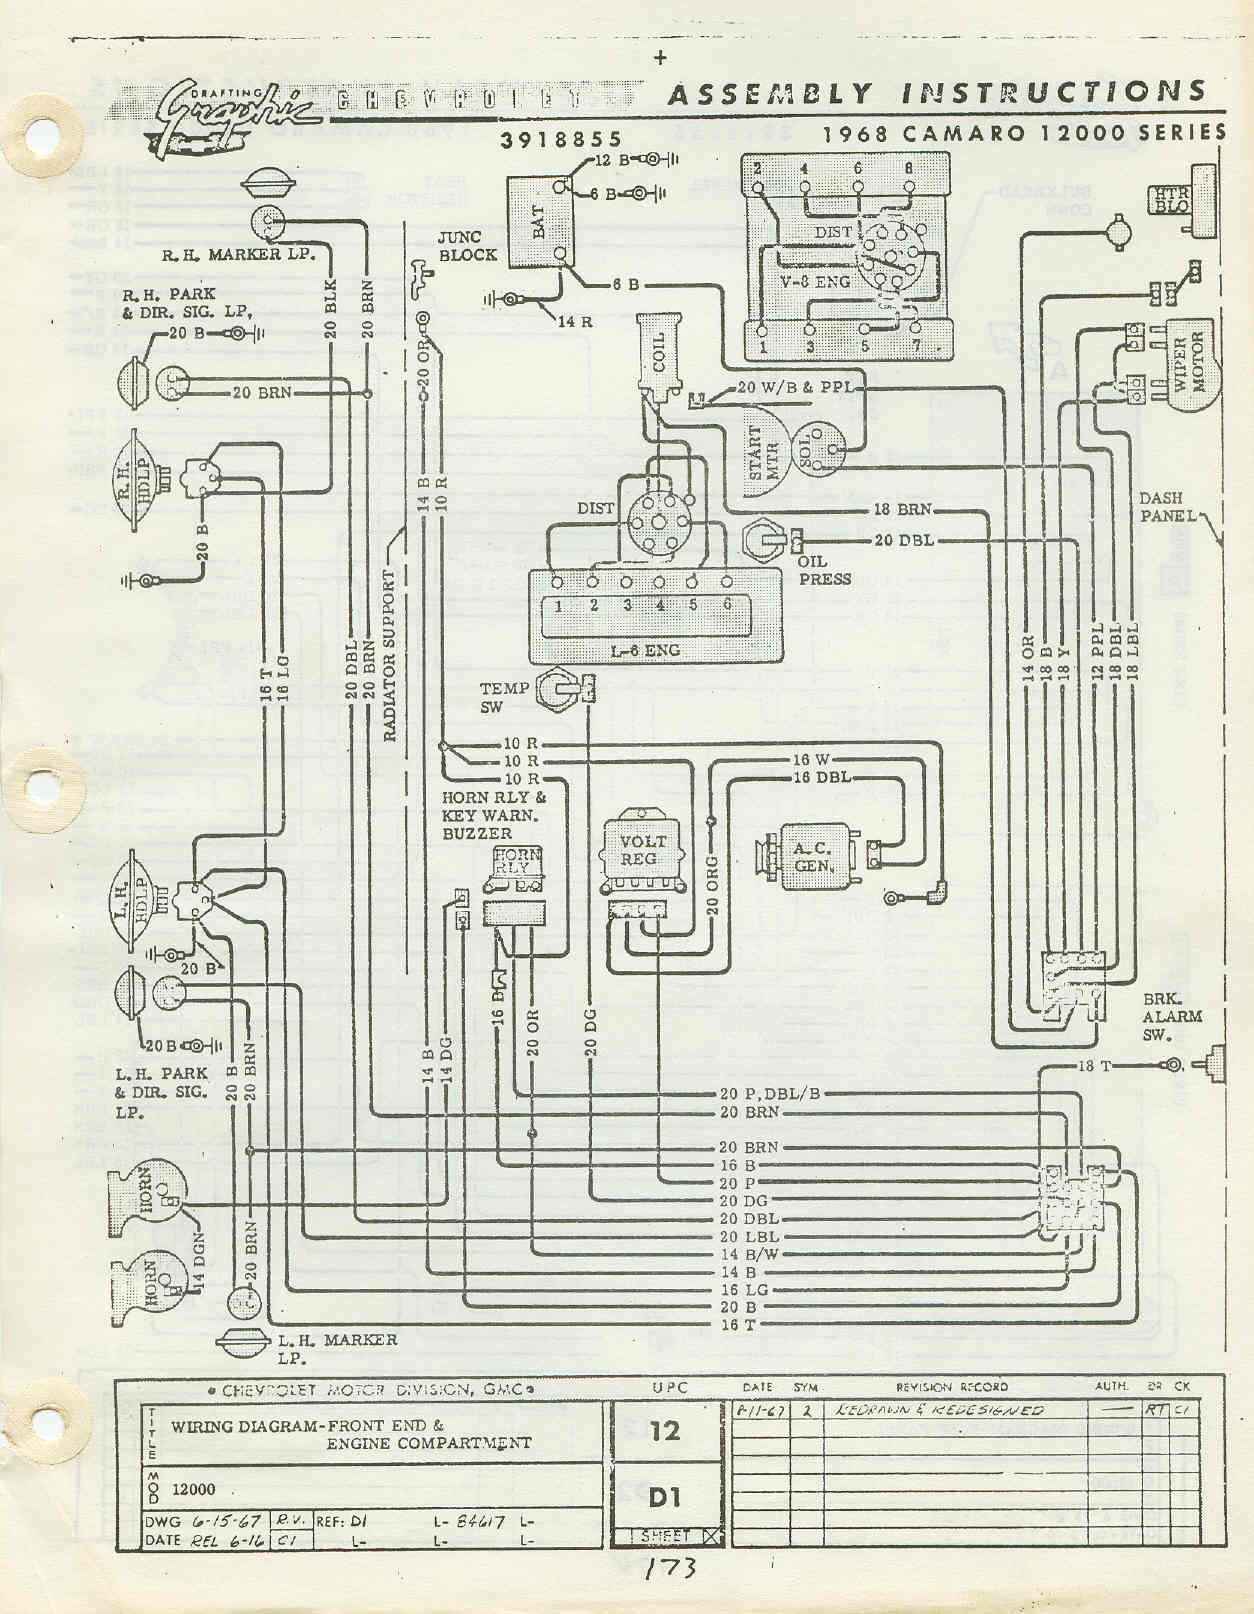 Firebird Wiring Harness Image Diagram Gibson Hot Rod Forum Bulletin Board Click For Larger Version 68 1 Views